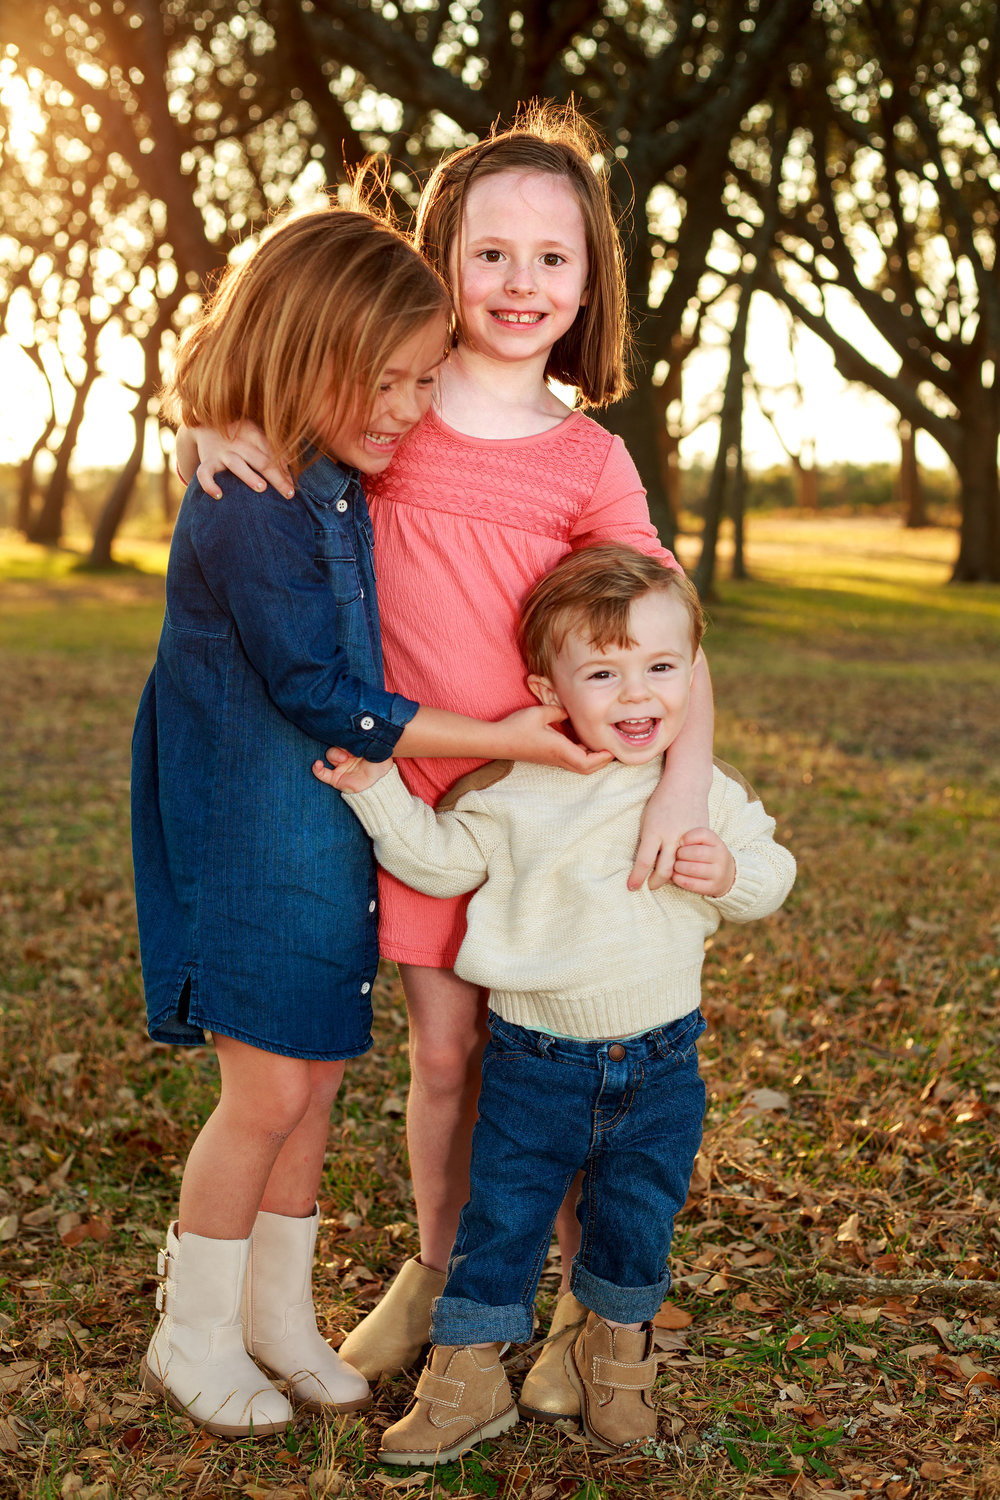 NC_Family_photographer_Tiffany_Abruzzo_Photography_2.jpg